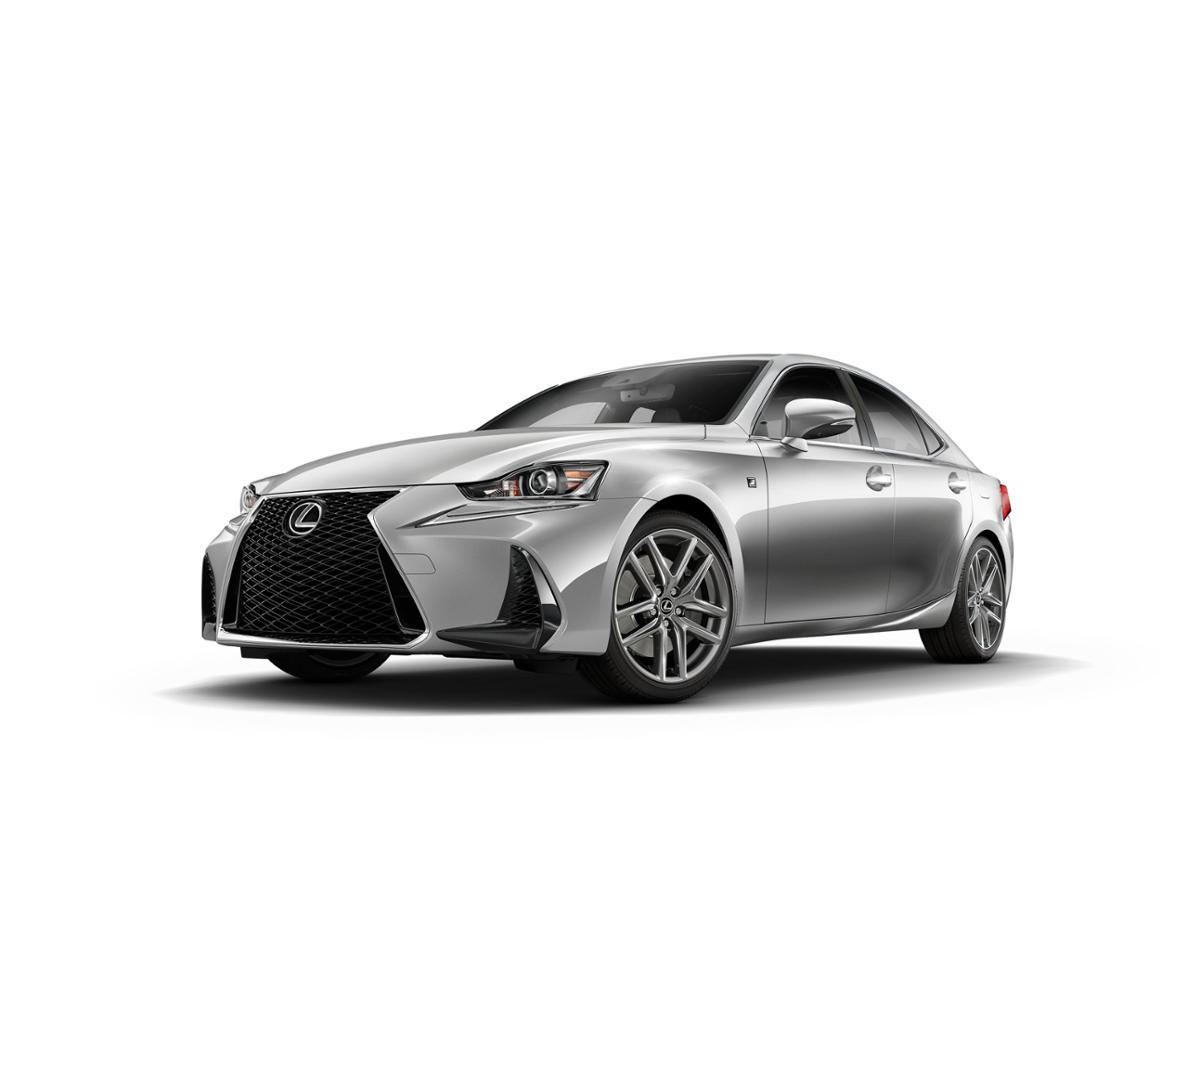 2017 Lexus IS Turbo Vehicle Photo in El Monte, CA 91731